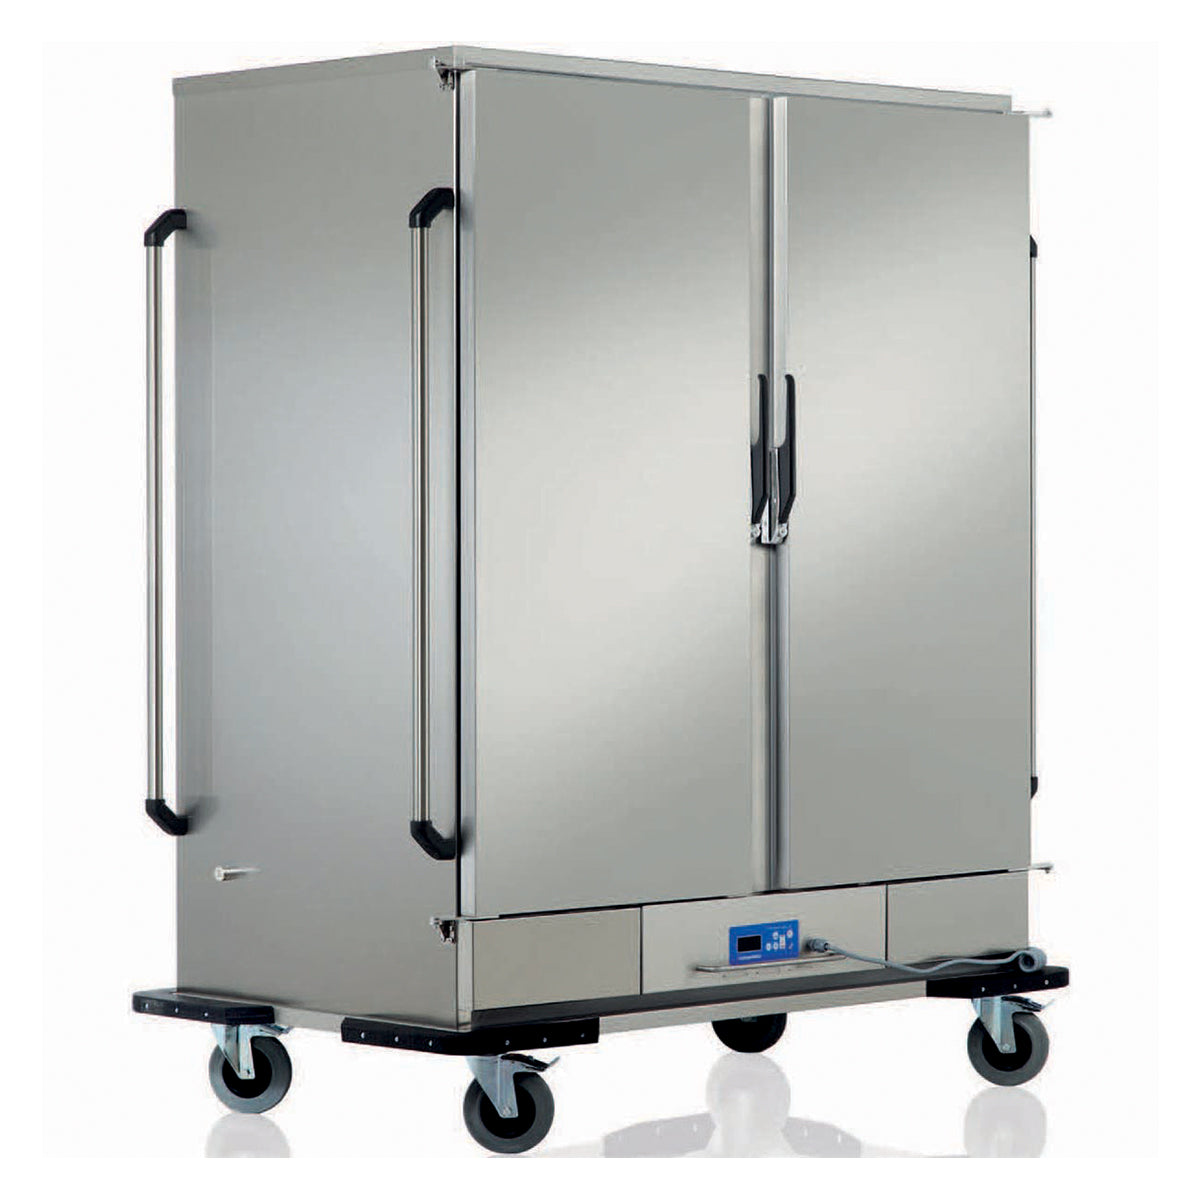 OZTI HEATED BANQUET TROLLEY TWO DOOR - Mabrook Hotel Supplies